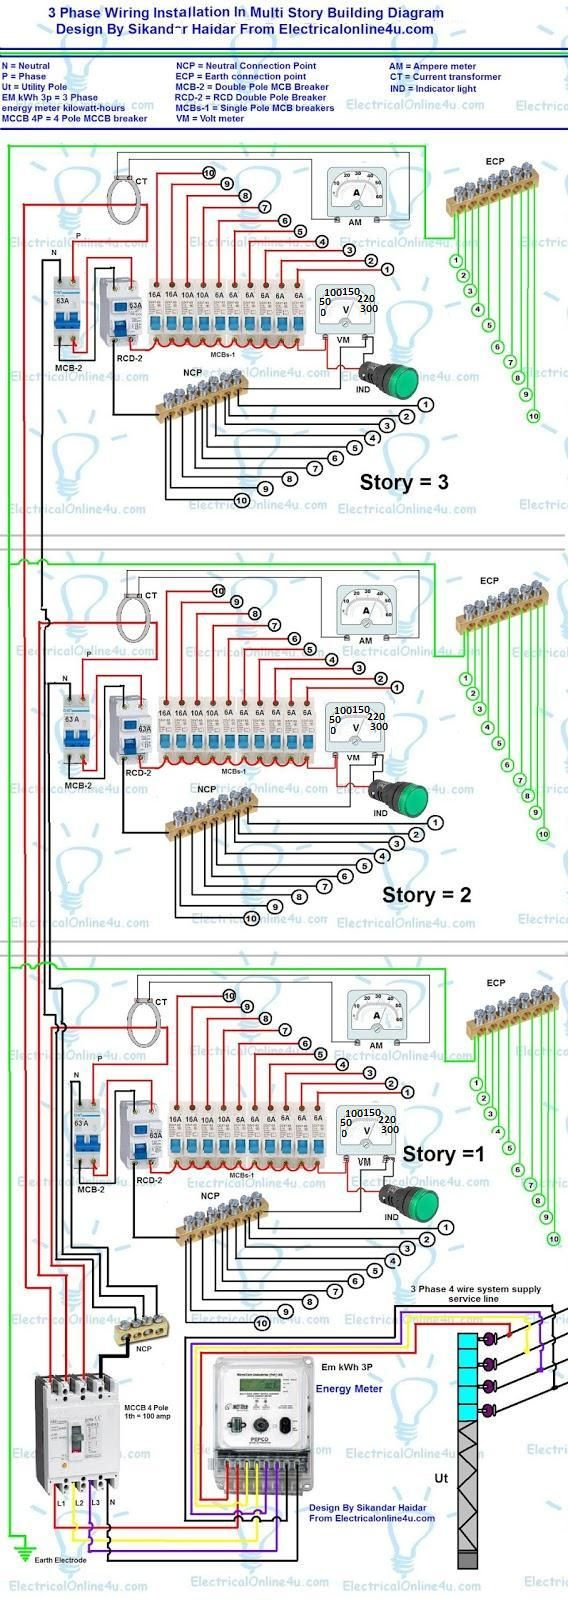 3 phase wiring installation diagram [ 568 x 1600 Pixel ]